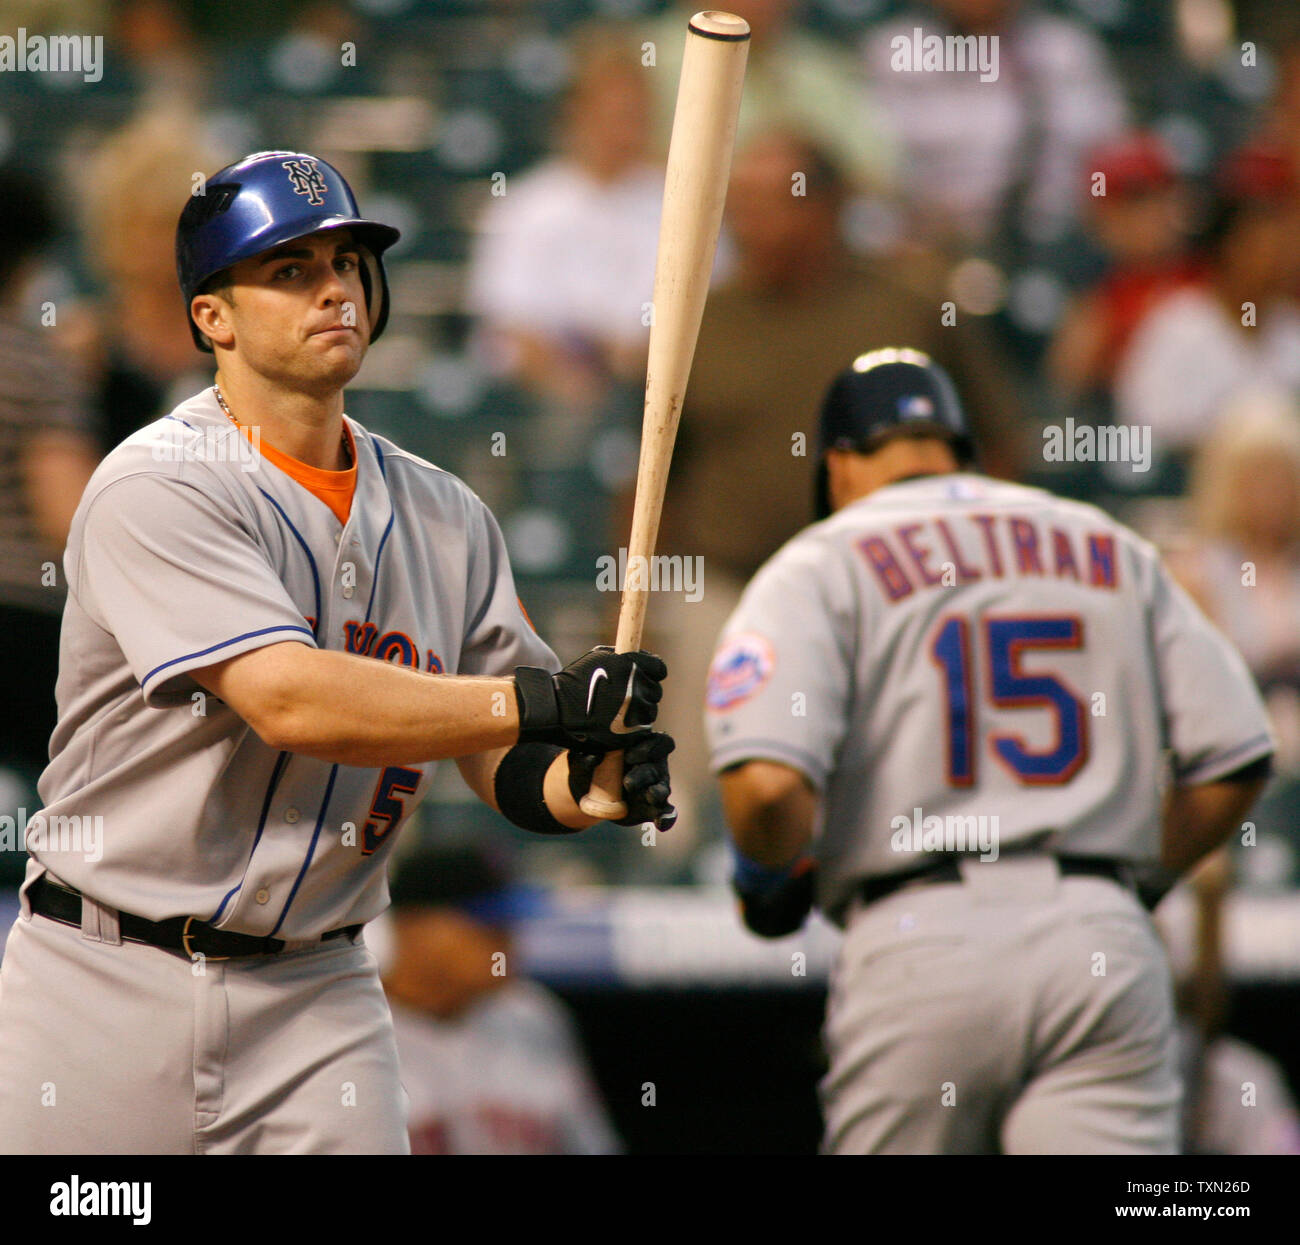 New York Mets Batter David Wright L Comes To Bat In The